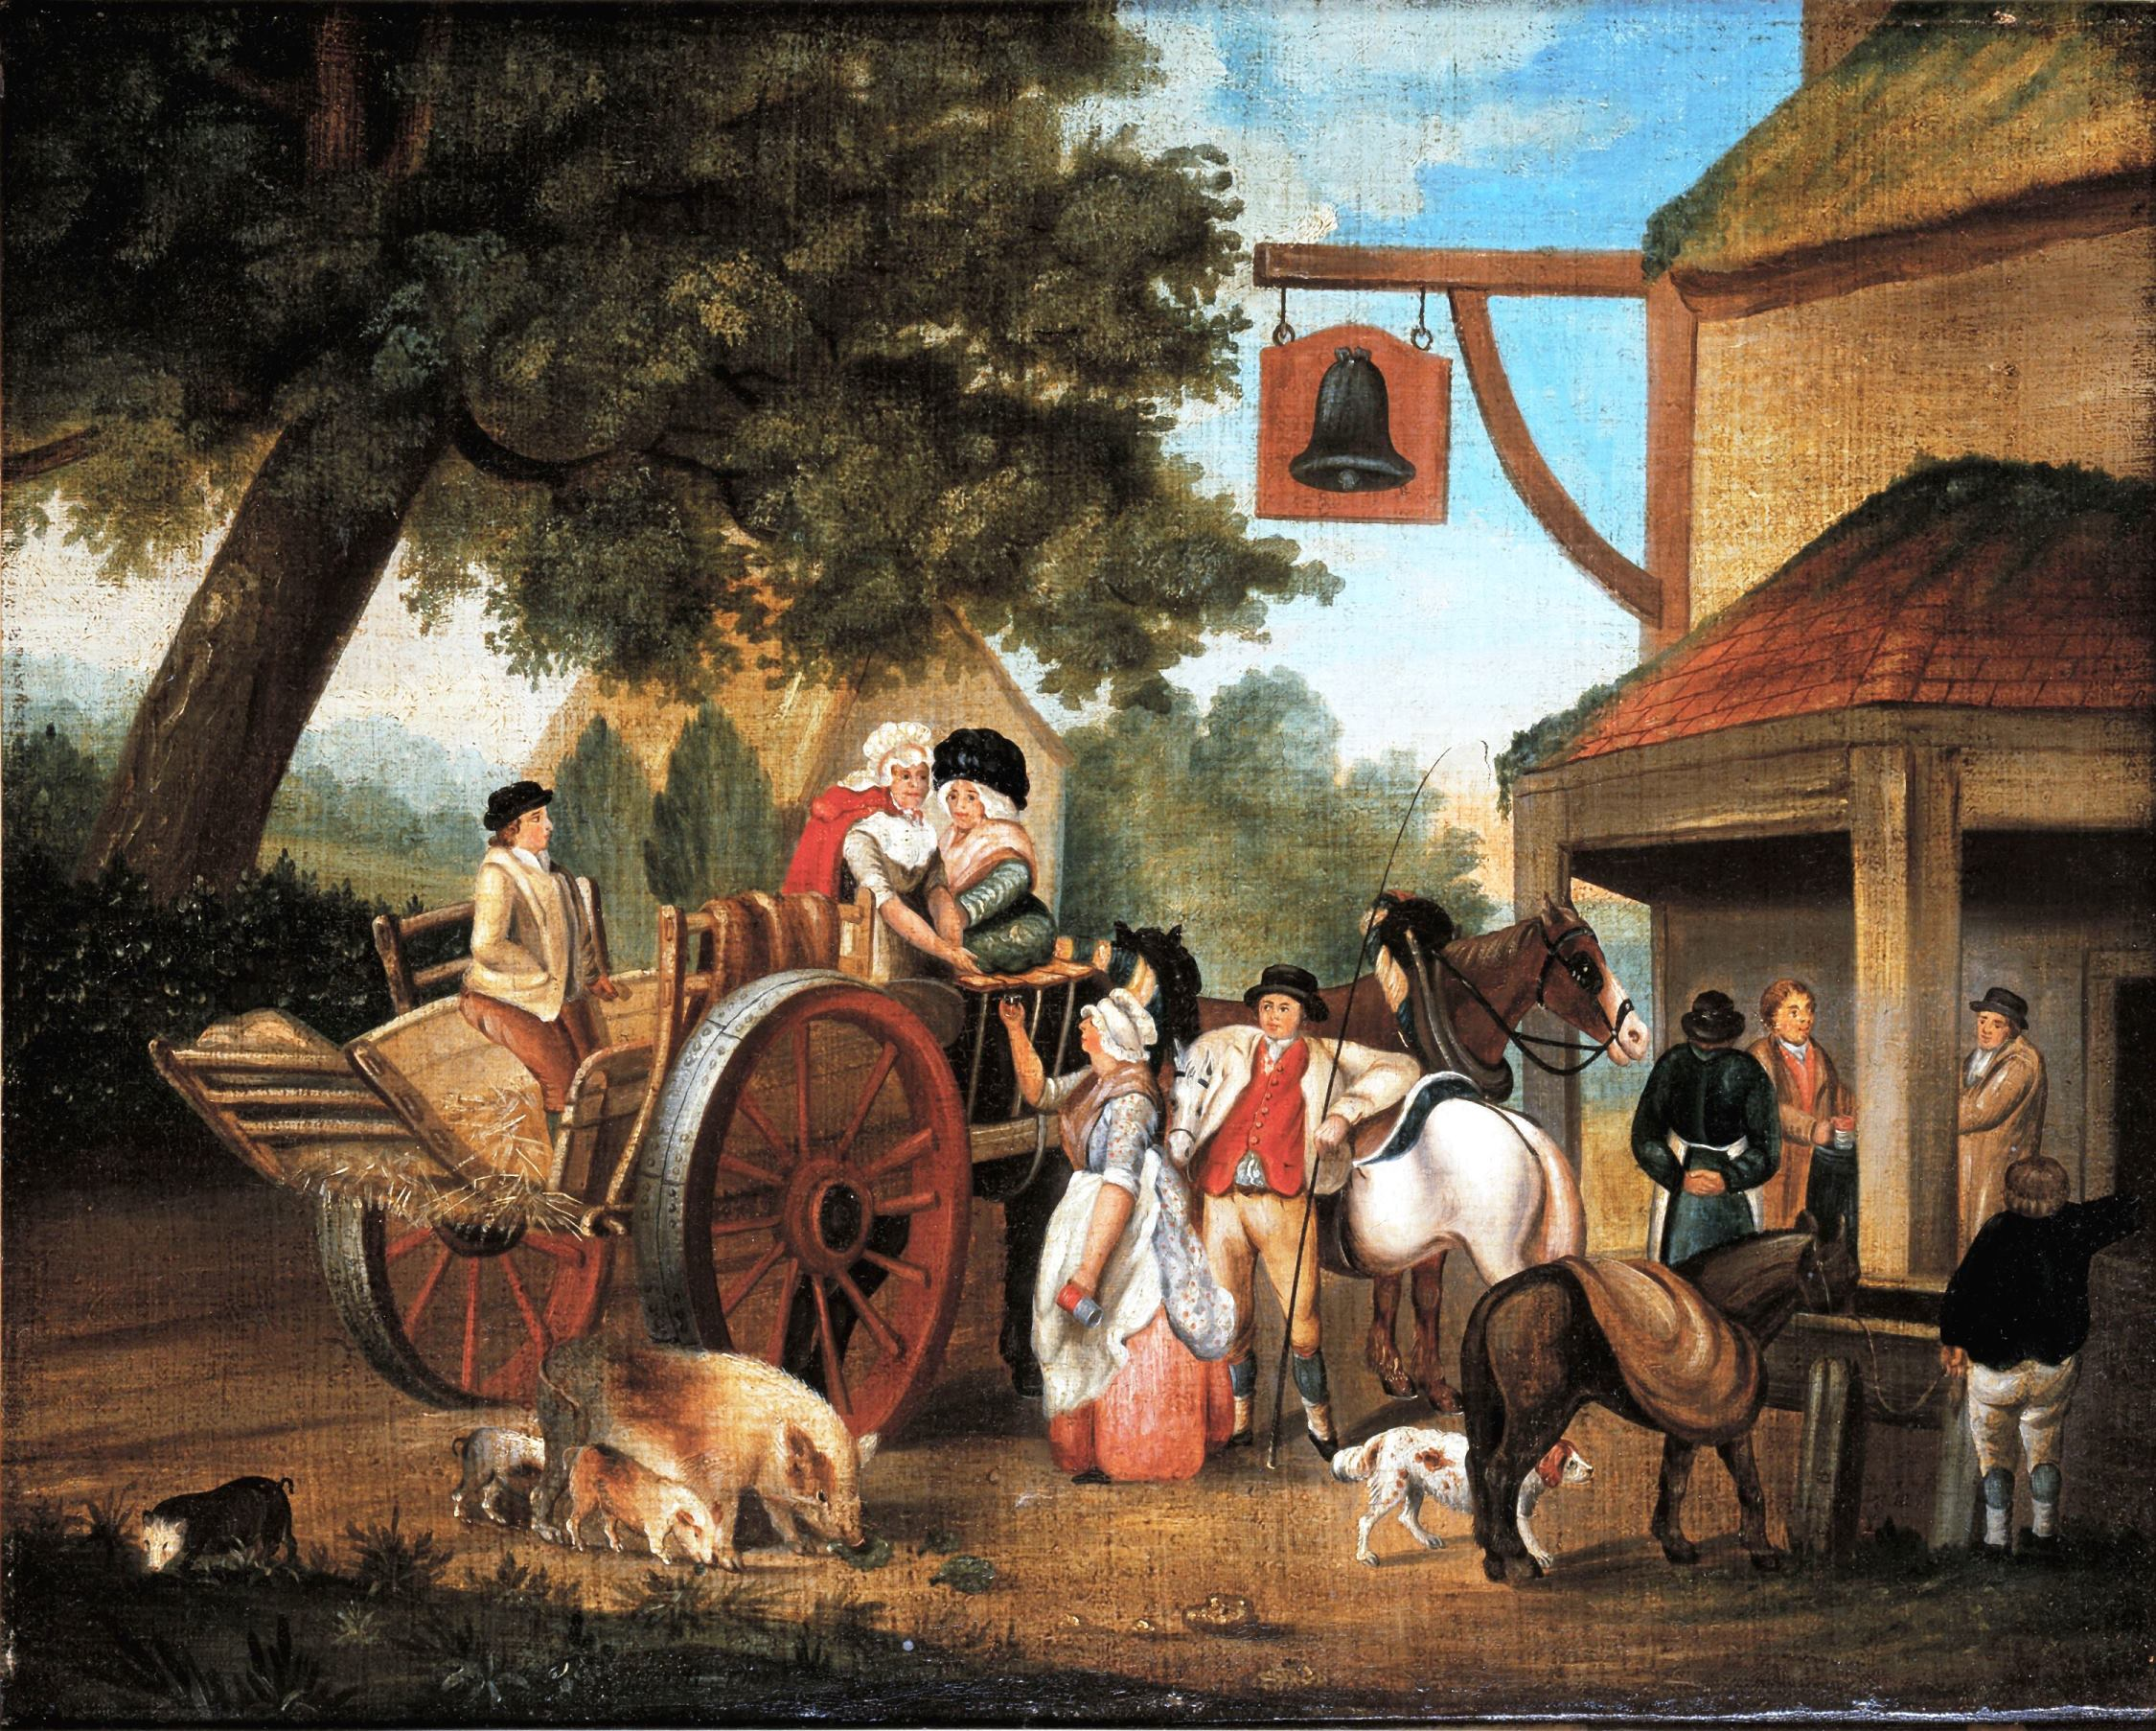 Framed image of rural tavern scene